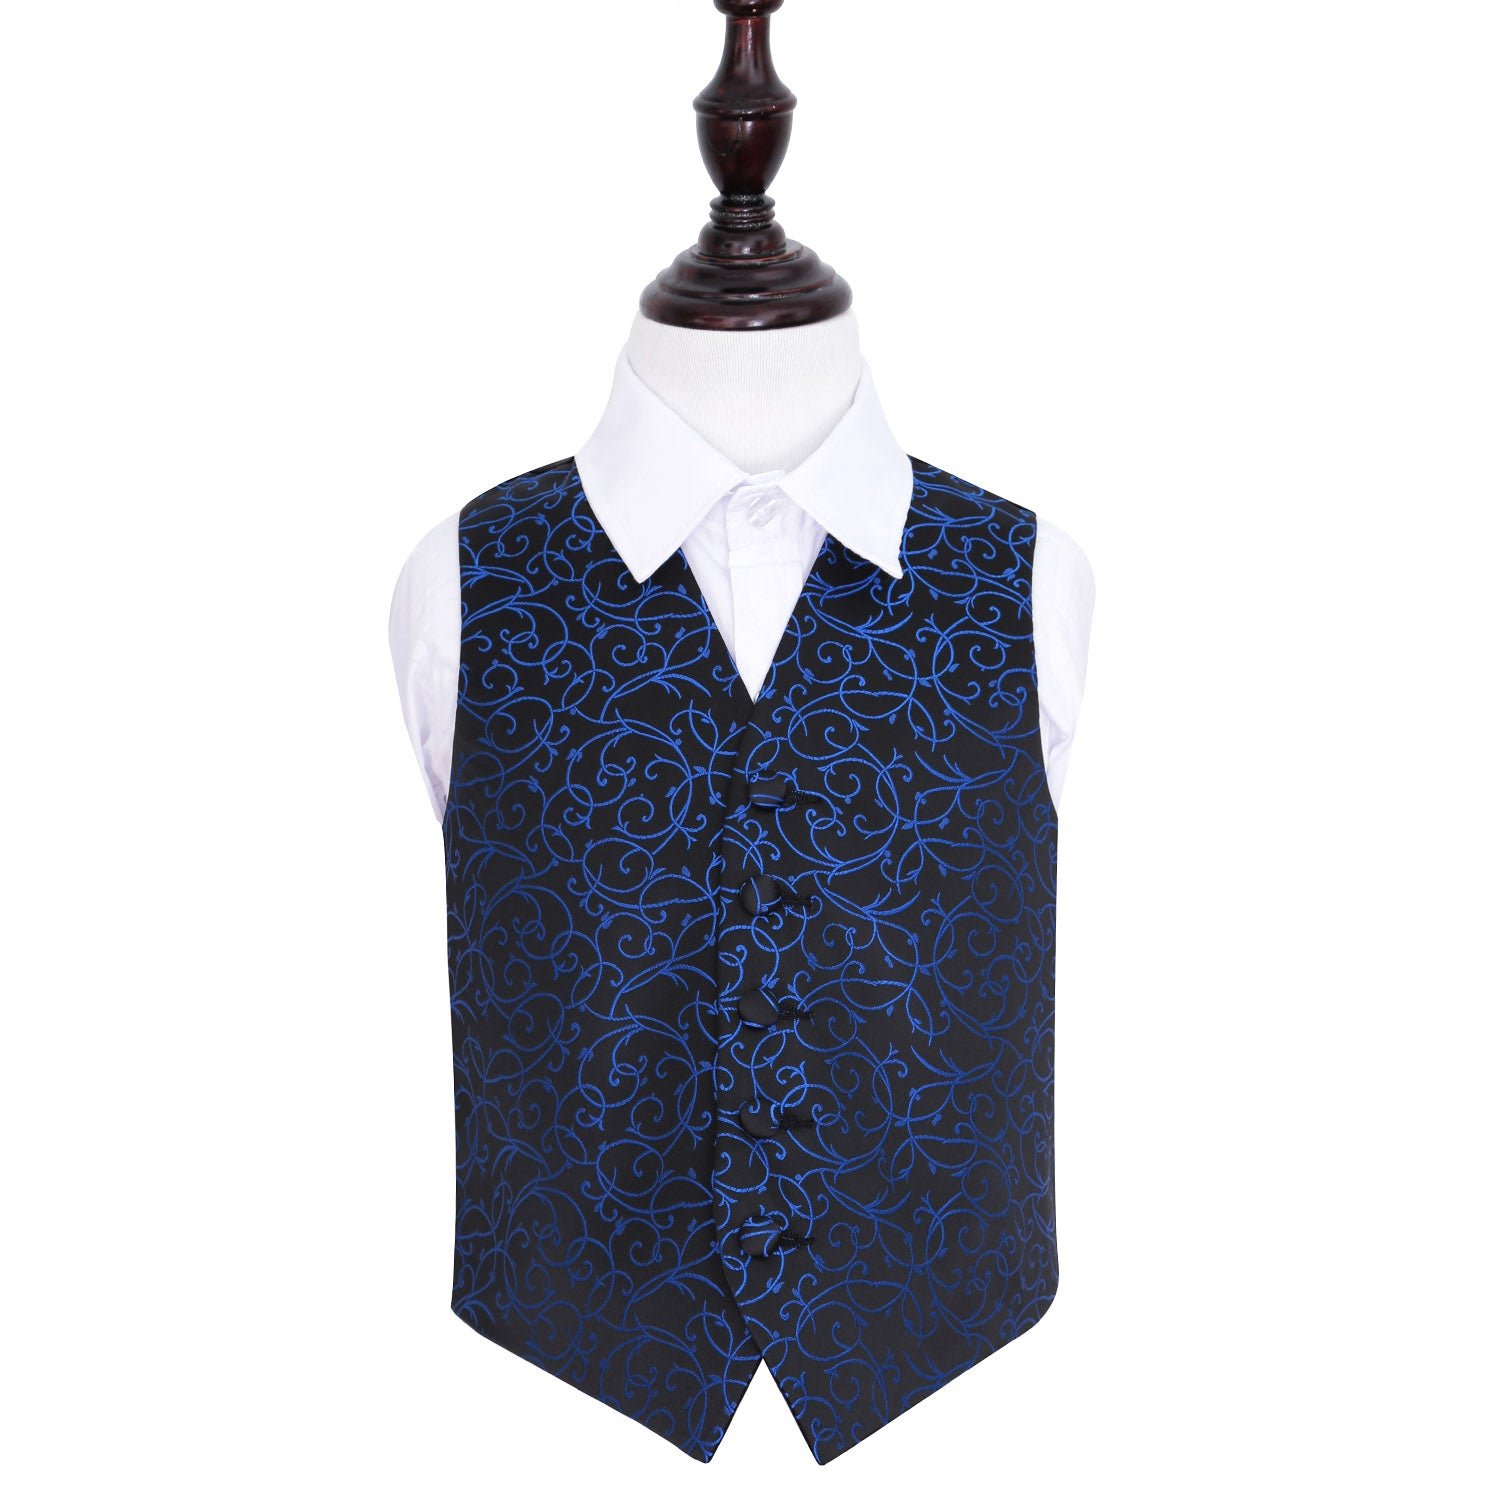 Swirl Waistcoat - Boys - Black & Blue, 26', Clothing & Accessories by Gifts24-7